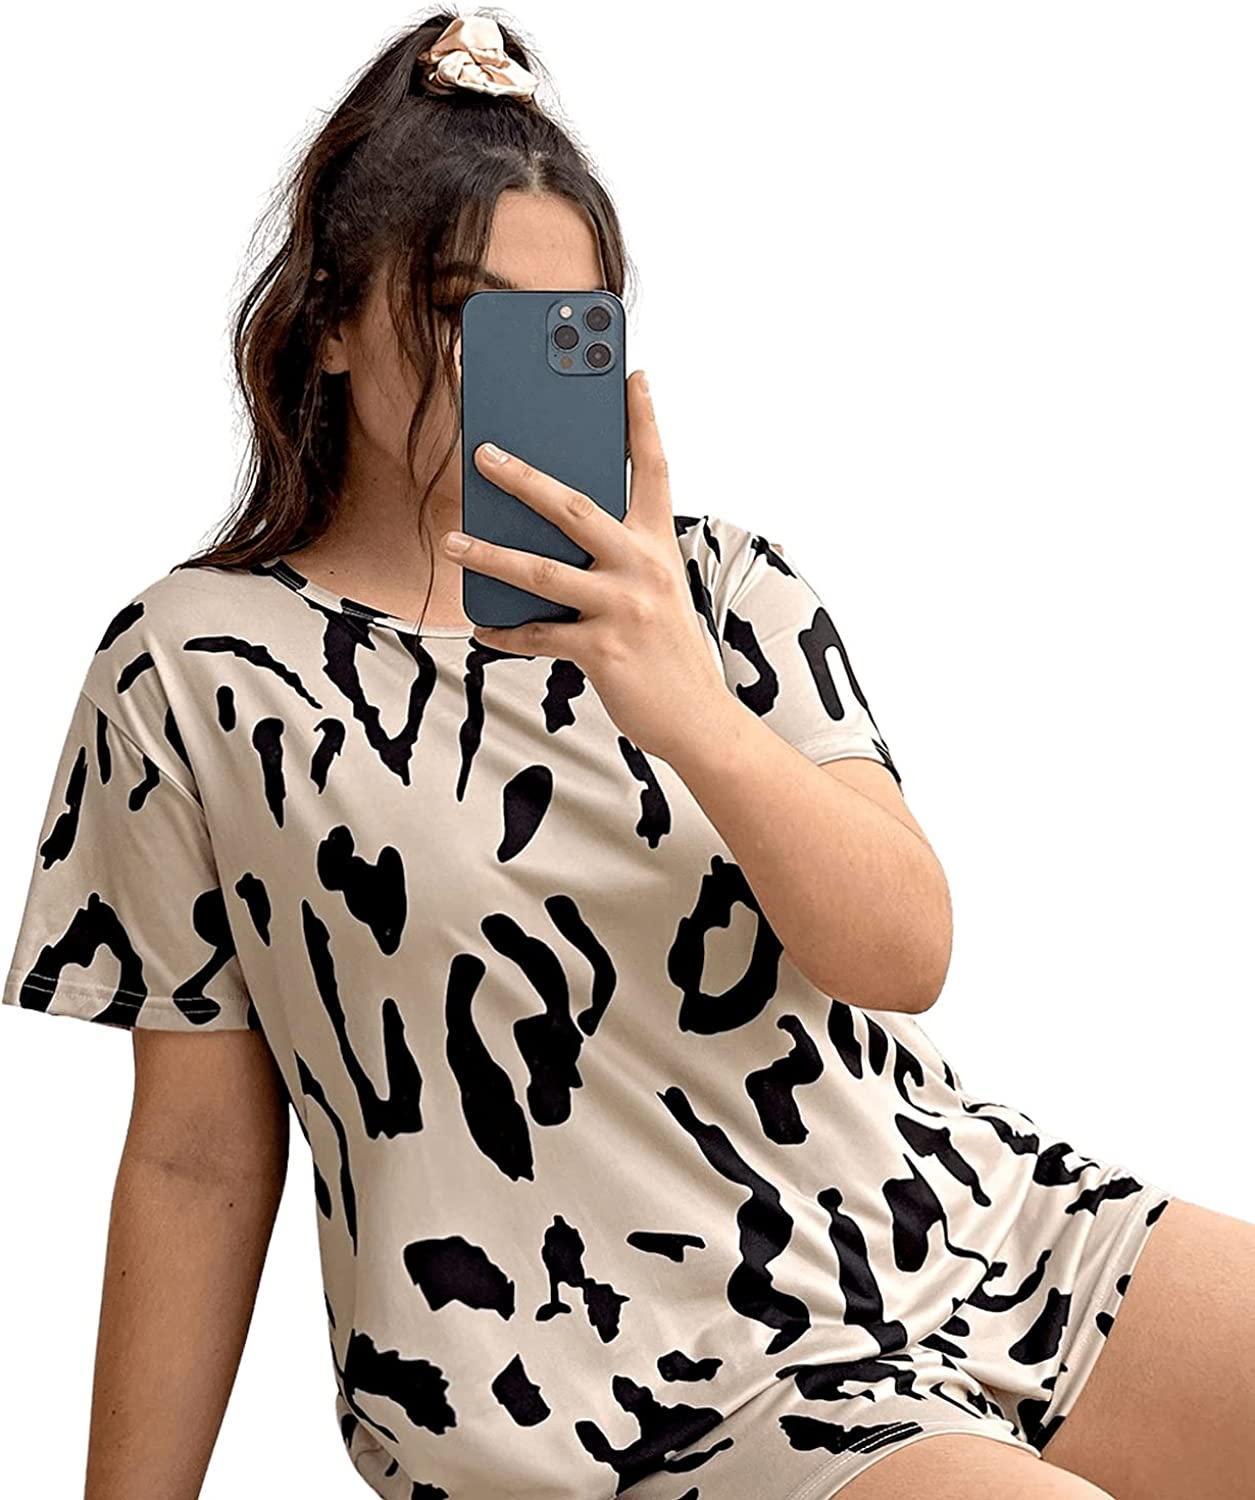 SOLY HUX Women's Plus Size Printed Short Sleeve Tee Top and Shorts Pajama Set Sleepwear